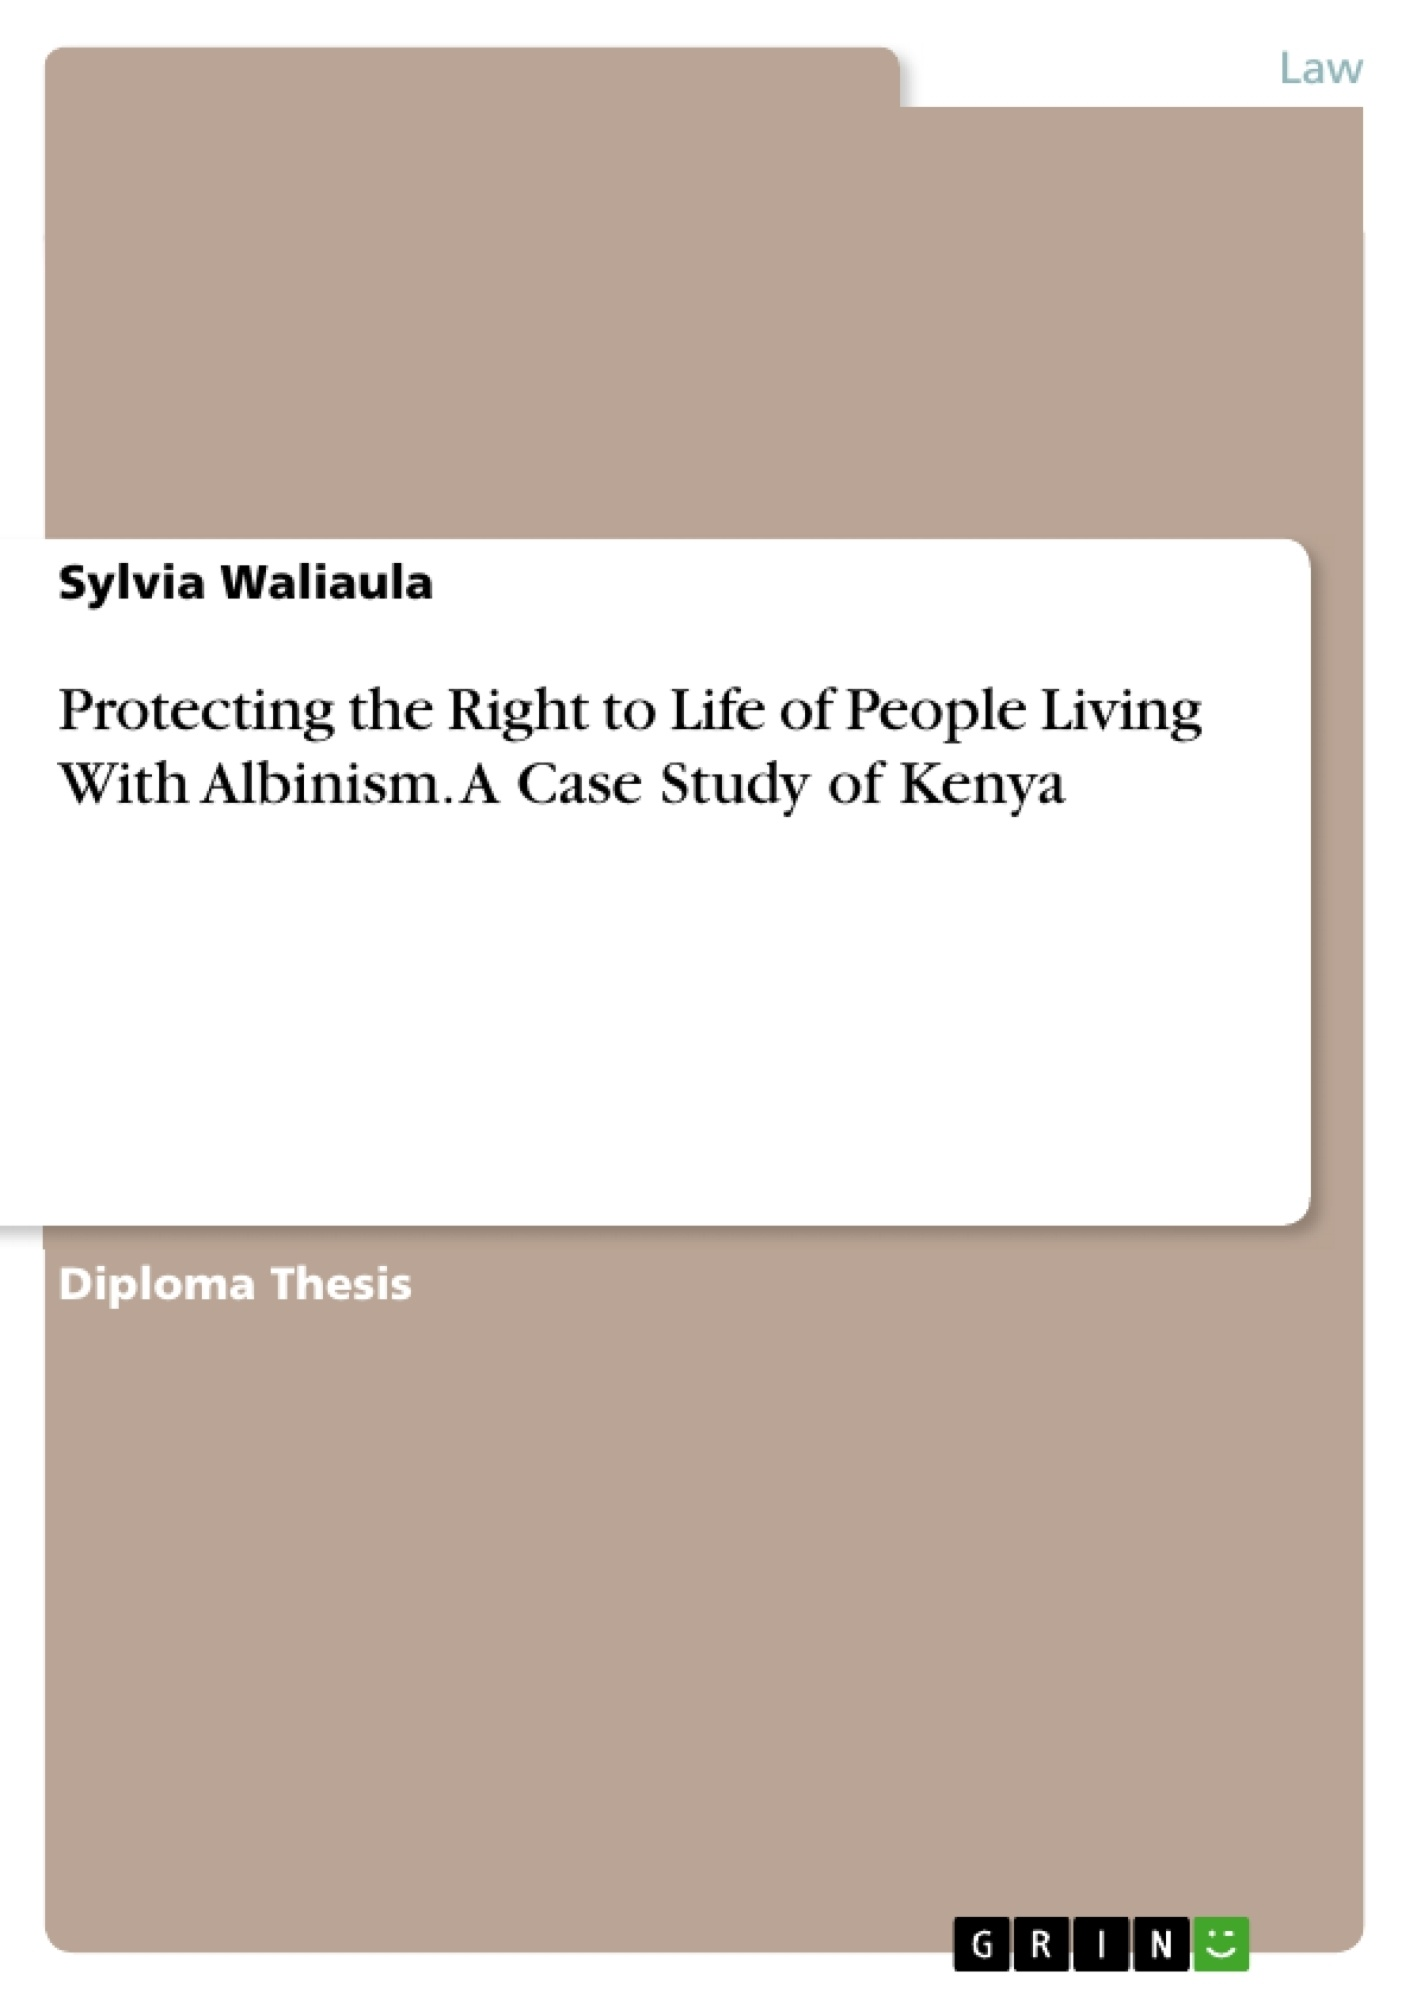 Title: Protecting the Right to Life of People Living With Albinism. A Case Study of Kenya